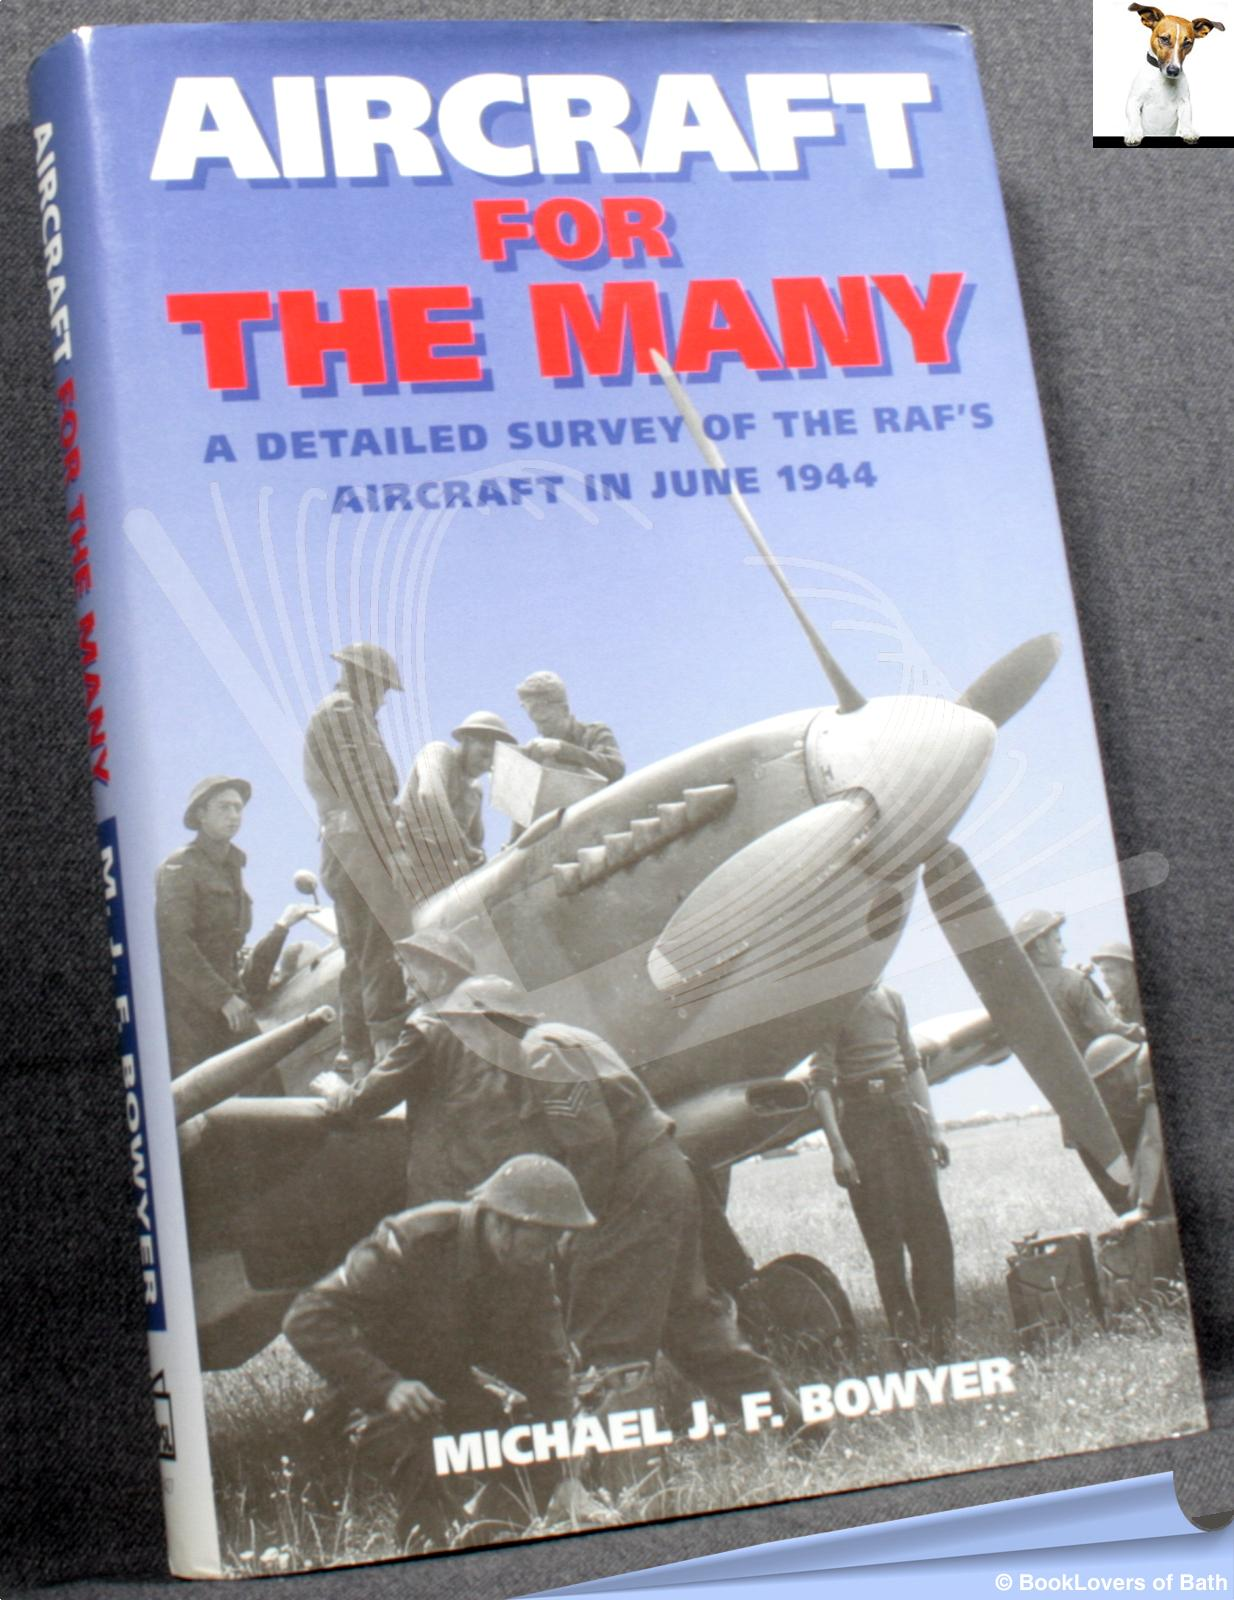 Aircraft For the Many: A Detailed Survey of the RAF's Aircraft in 1944 - Michael J.F. Bowyer